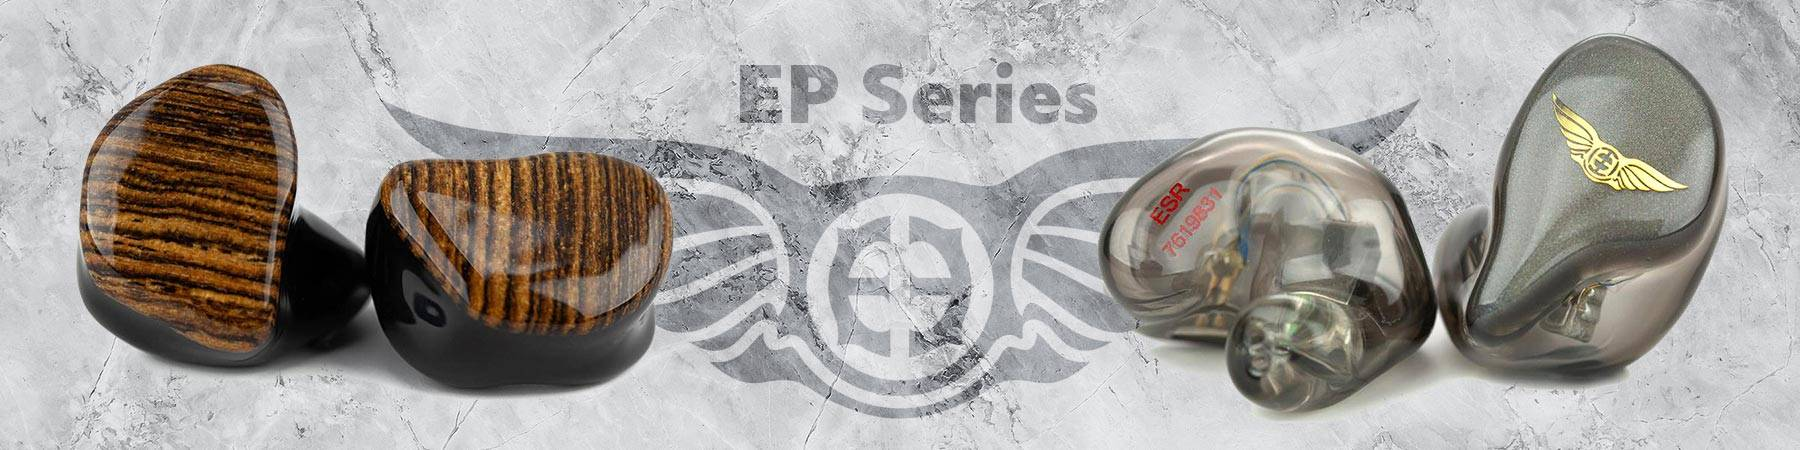 Empire Ears EP Series IEMs